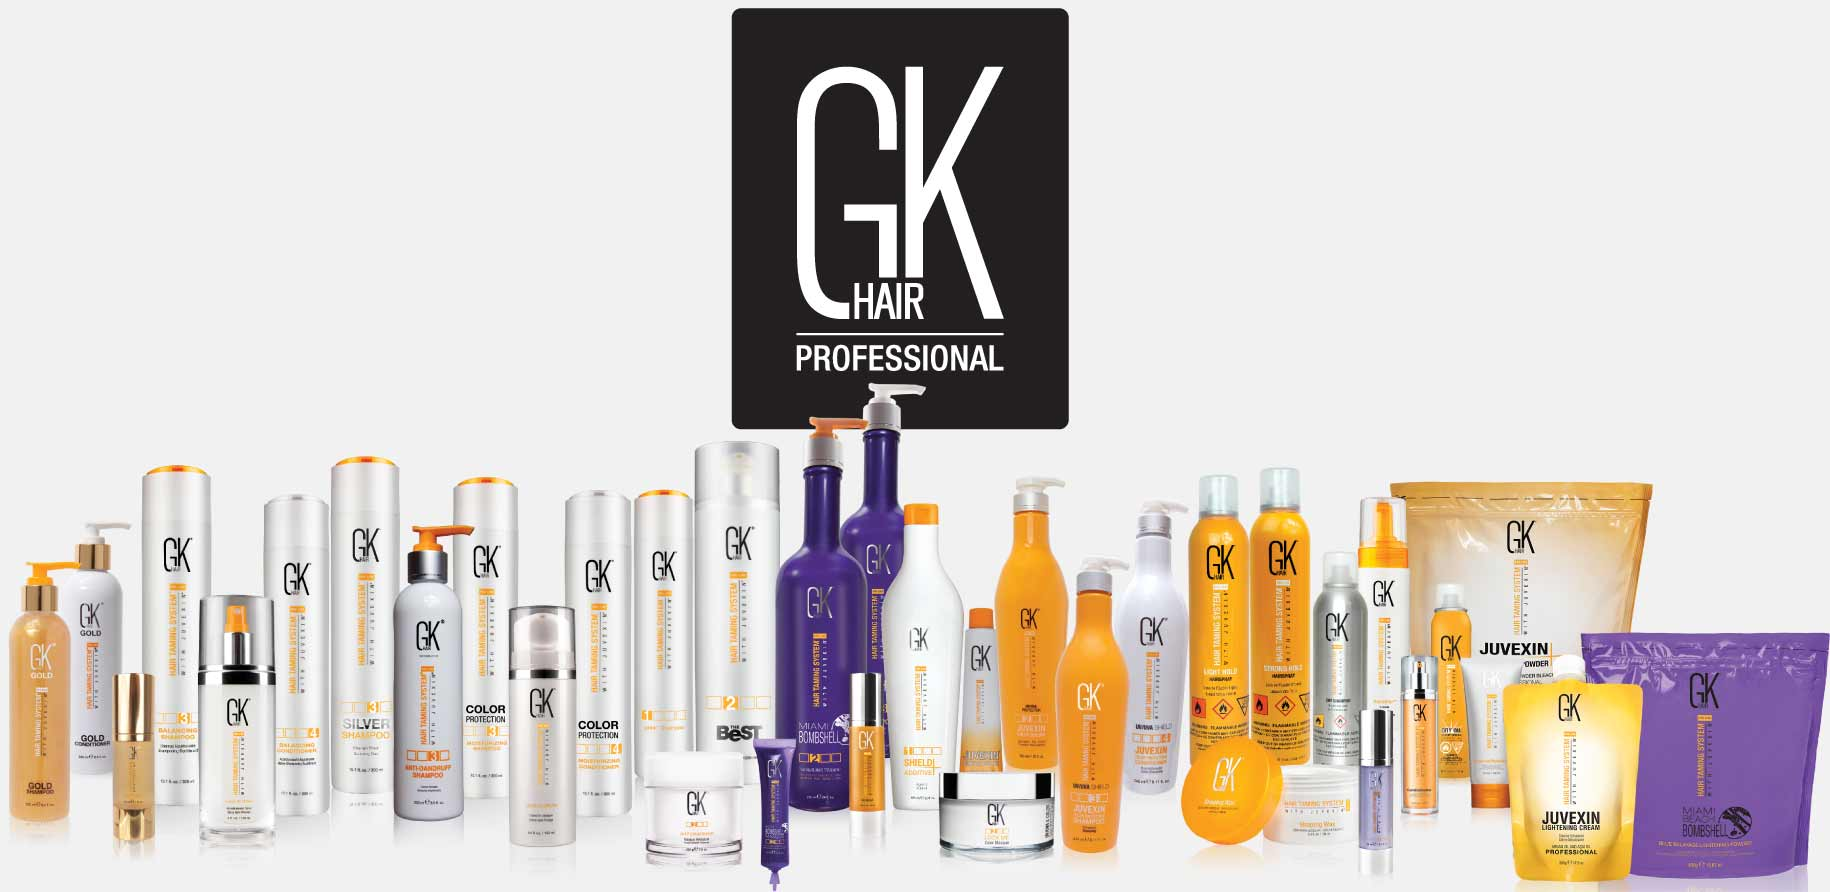 GKhair all product line is available in cosmeticatrading